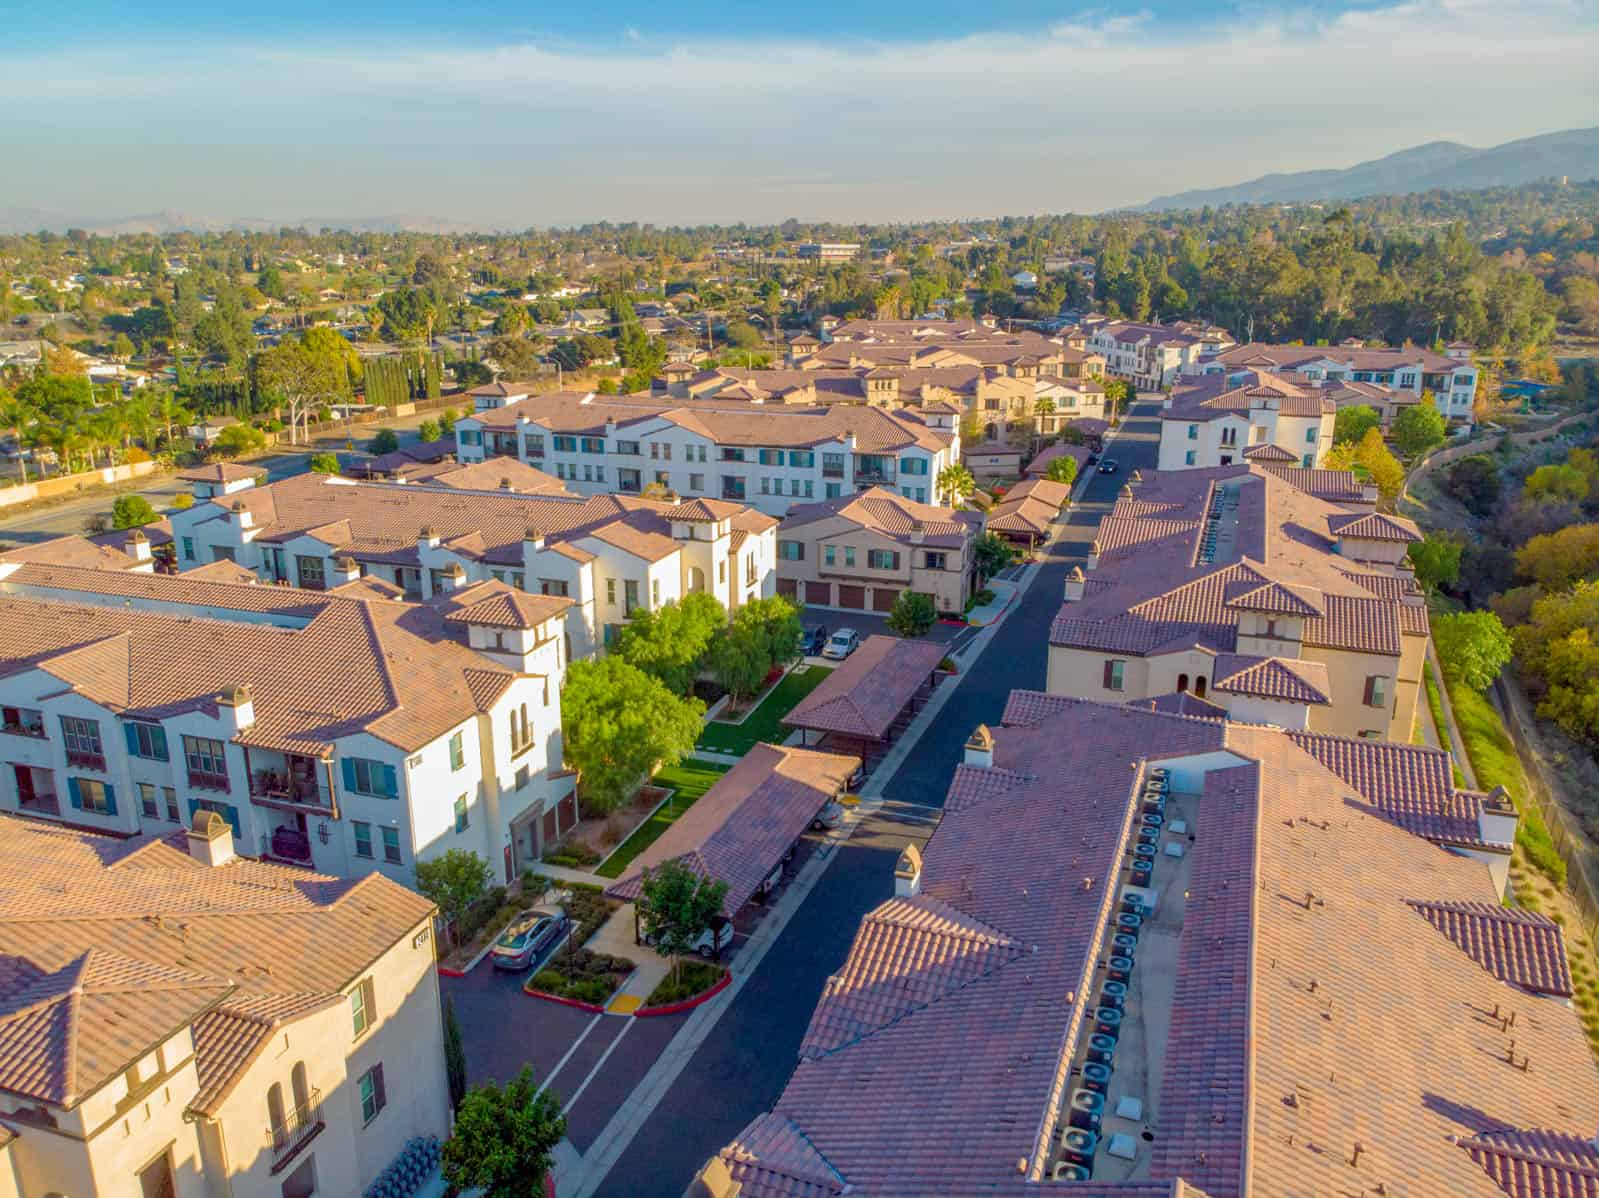 aerial drone photo of apartment building rooftops in Corona, California